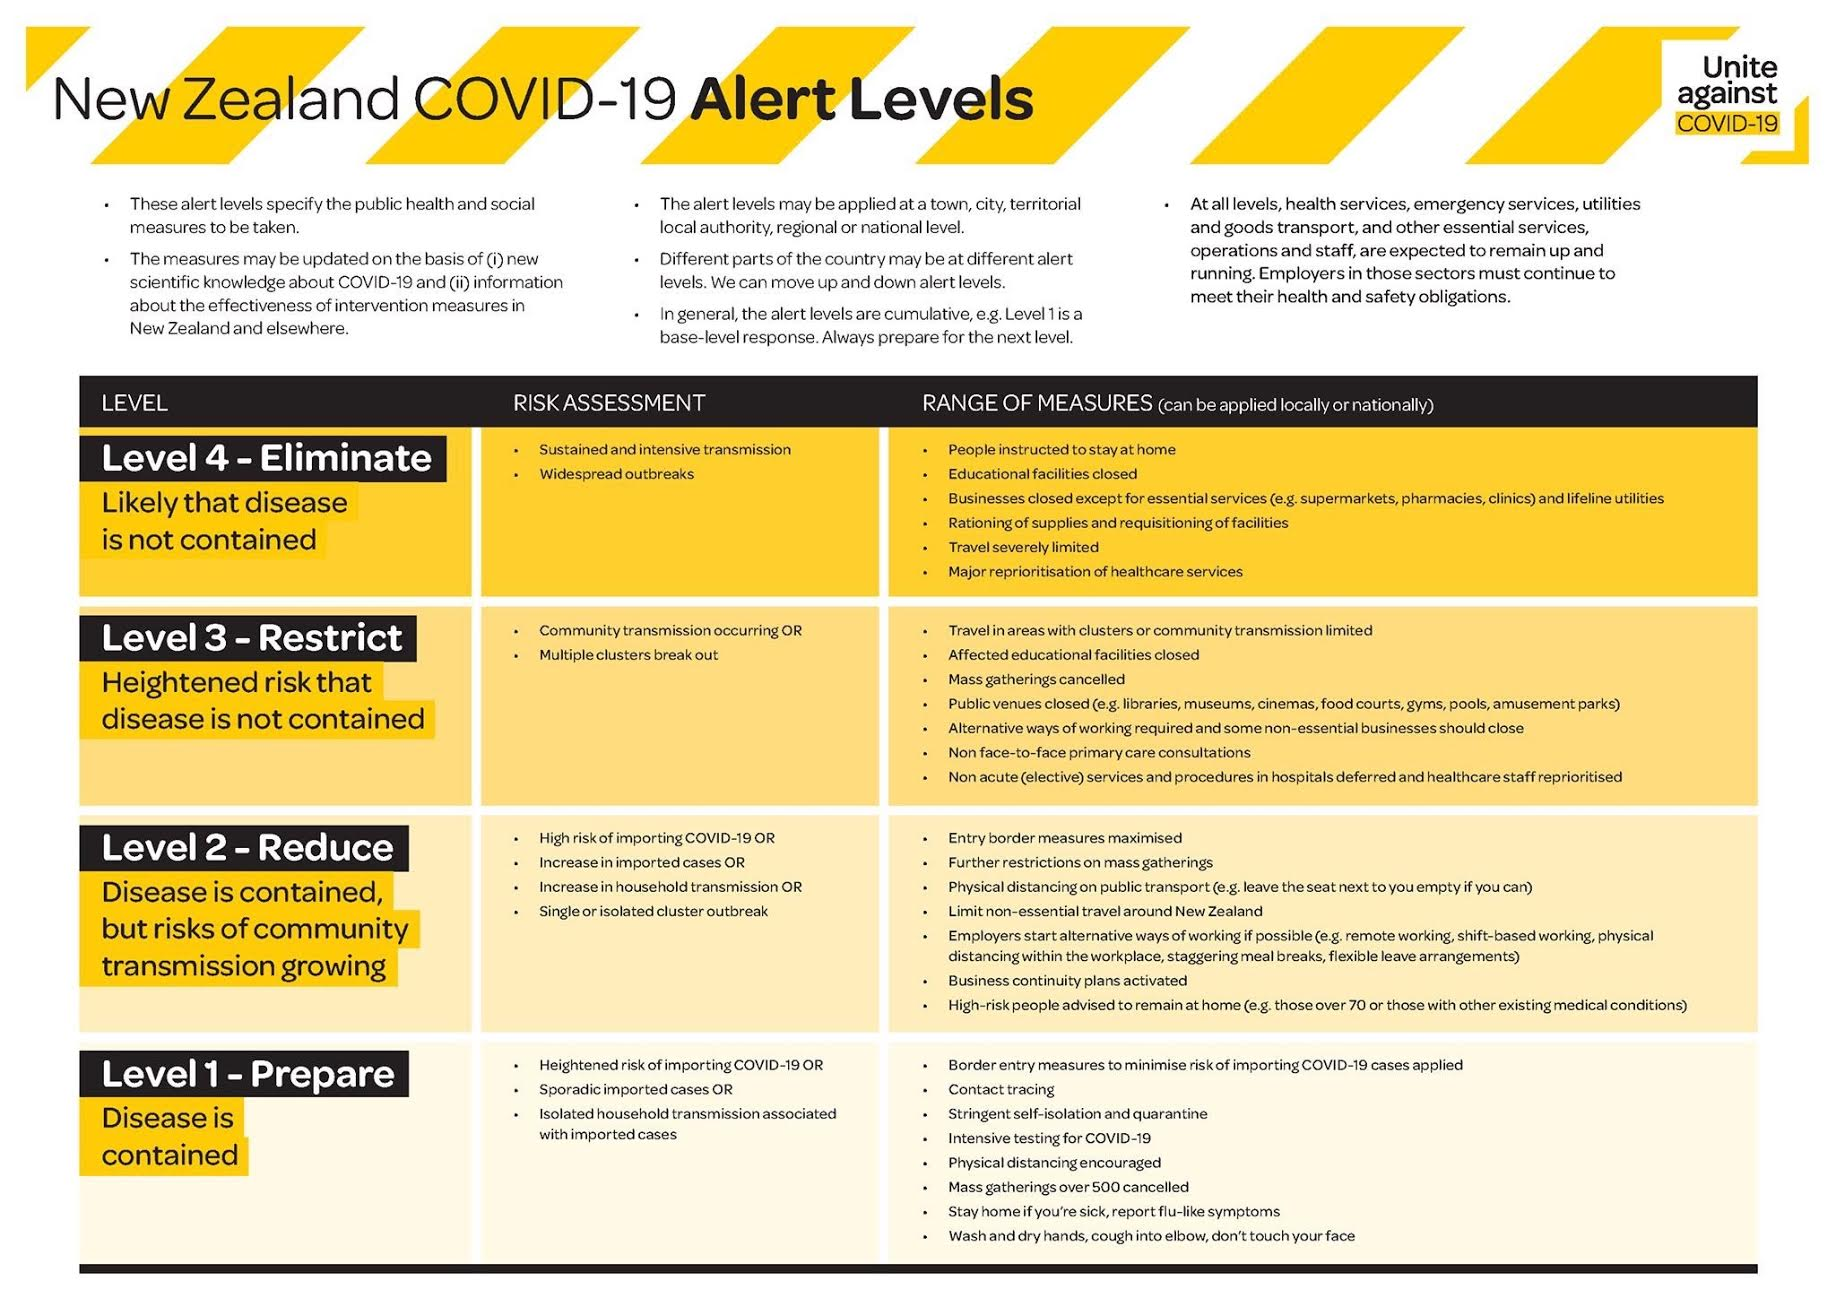 Coronavirus crisis: New Zealand to enter COVID-19 lockdown